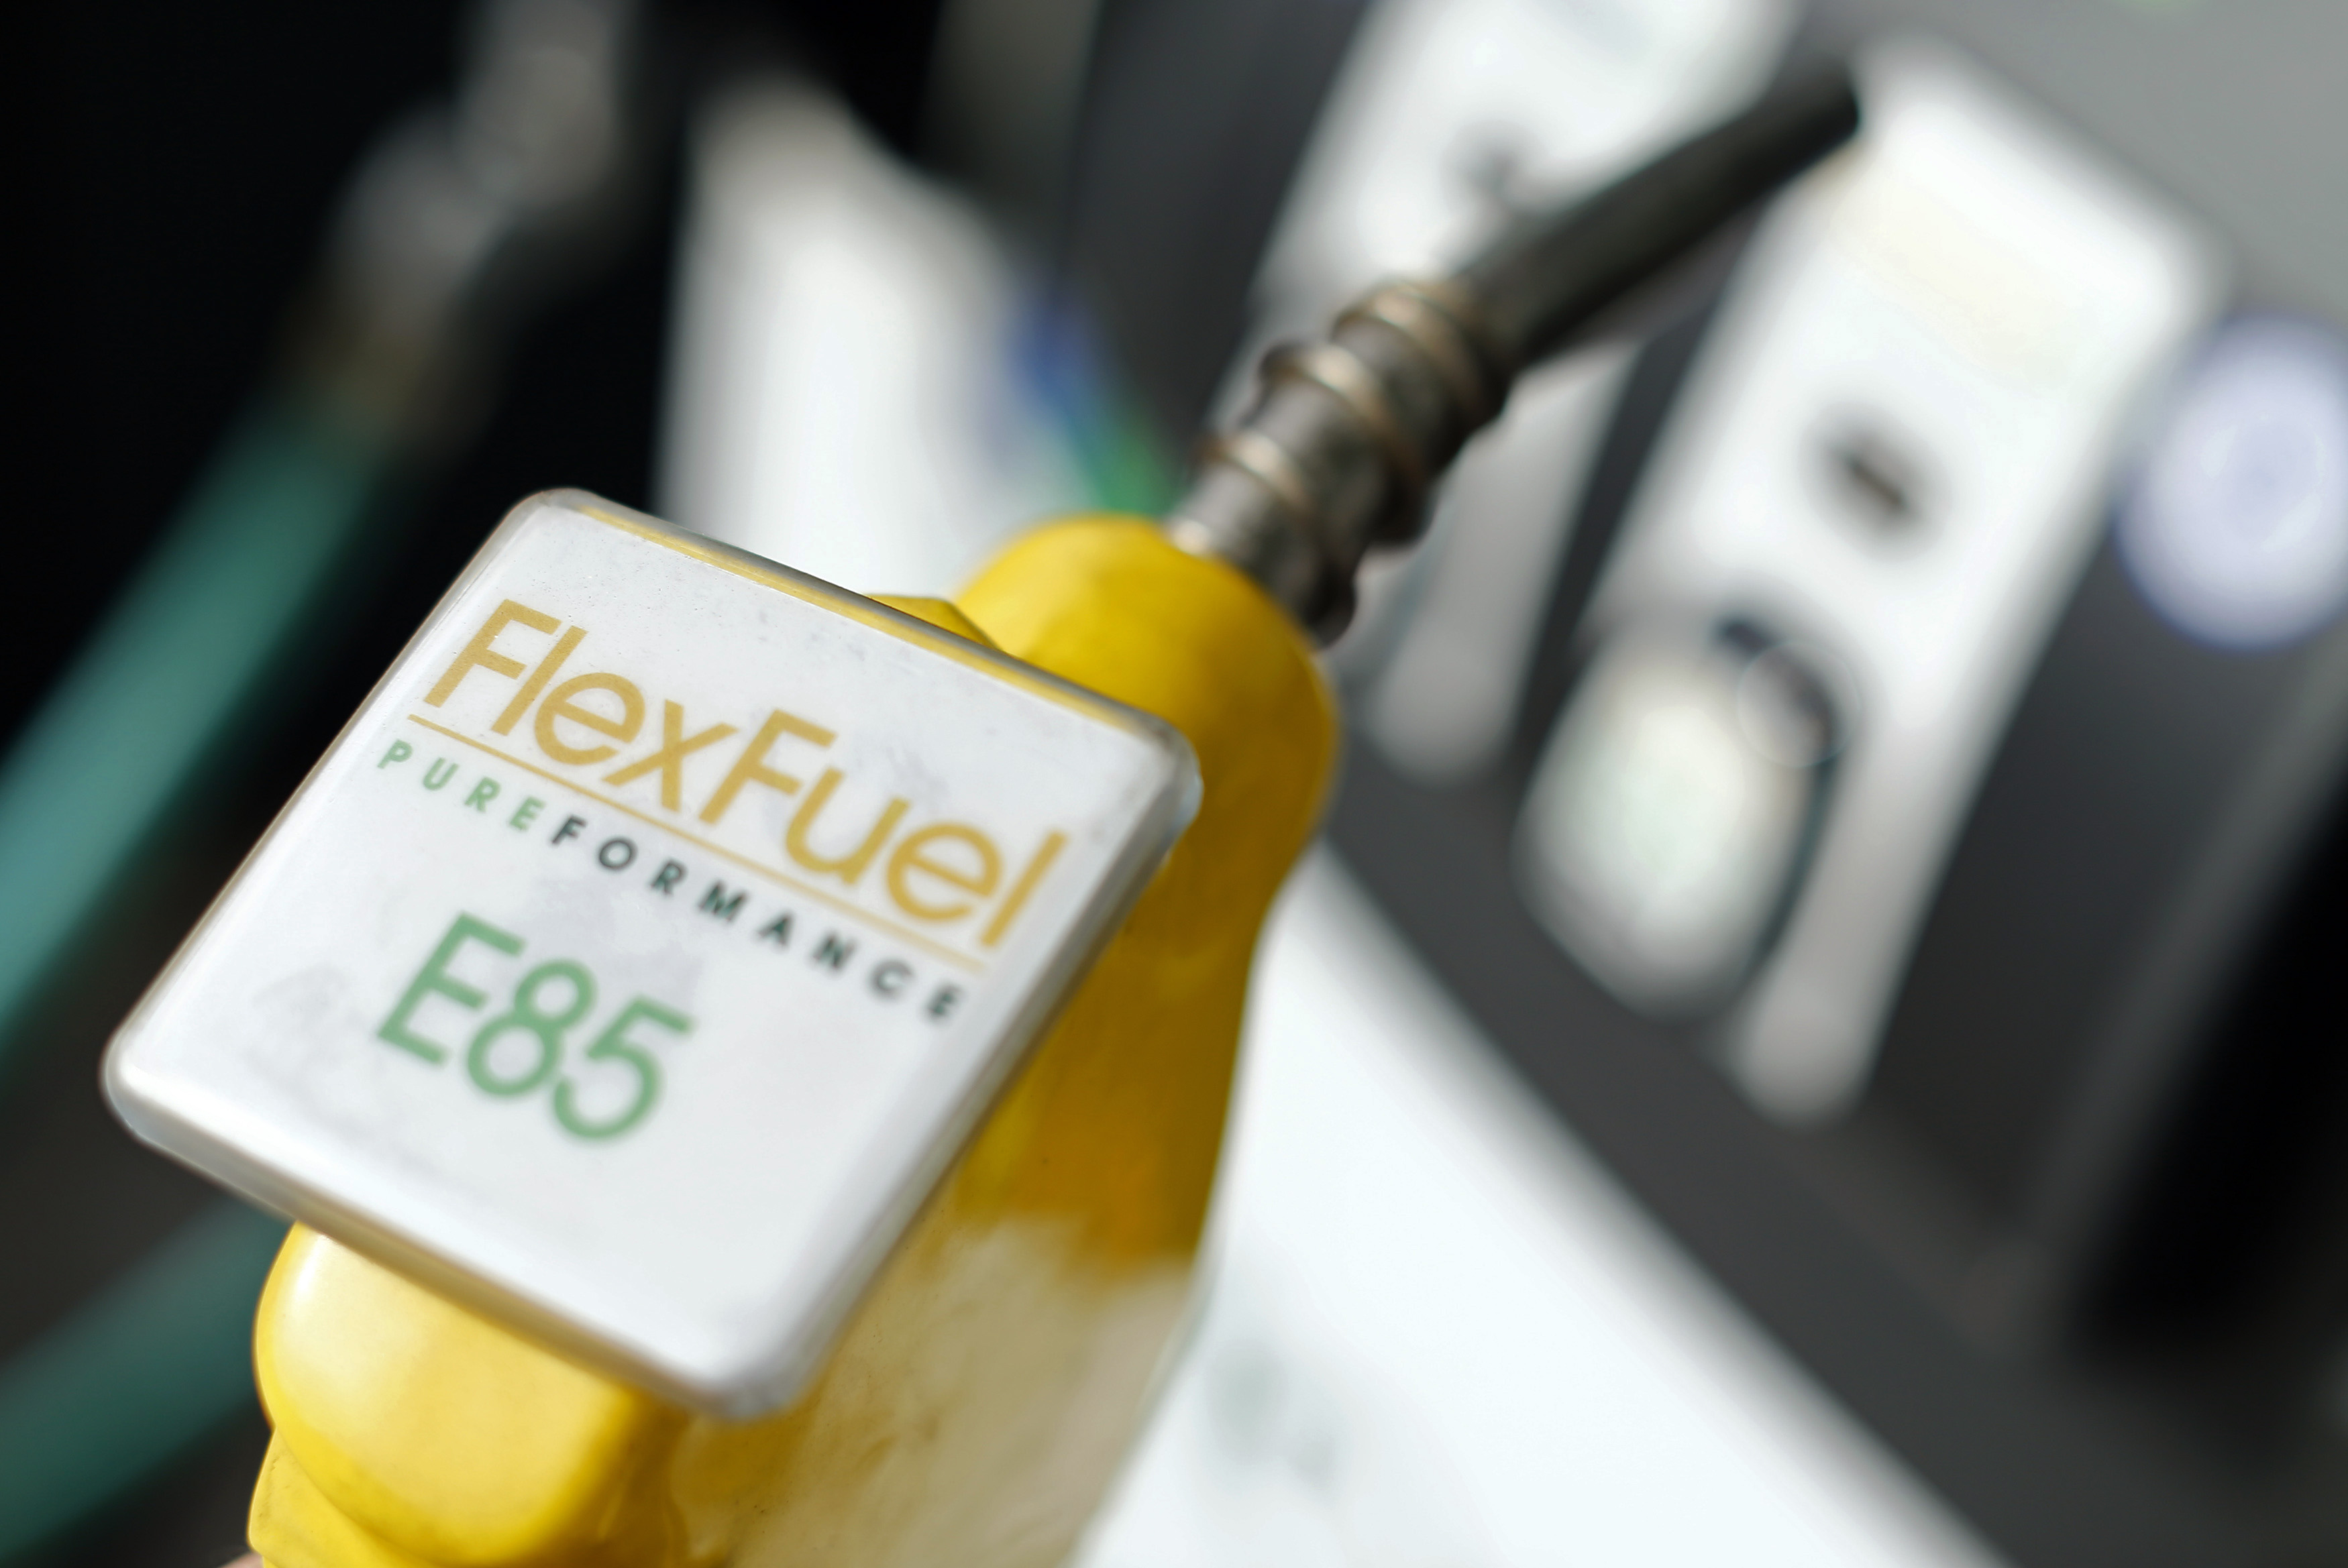 The fuel nozzle from a flex fuel pump is shown in this illustration photograph taken at a filling station in San Diego, California January 8, 2015.  REUTERS/Mike Blake  (UNITED STATES - Tags: ENERGY BUSINESS)